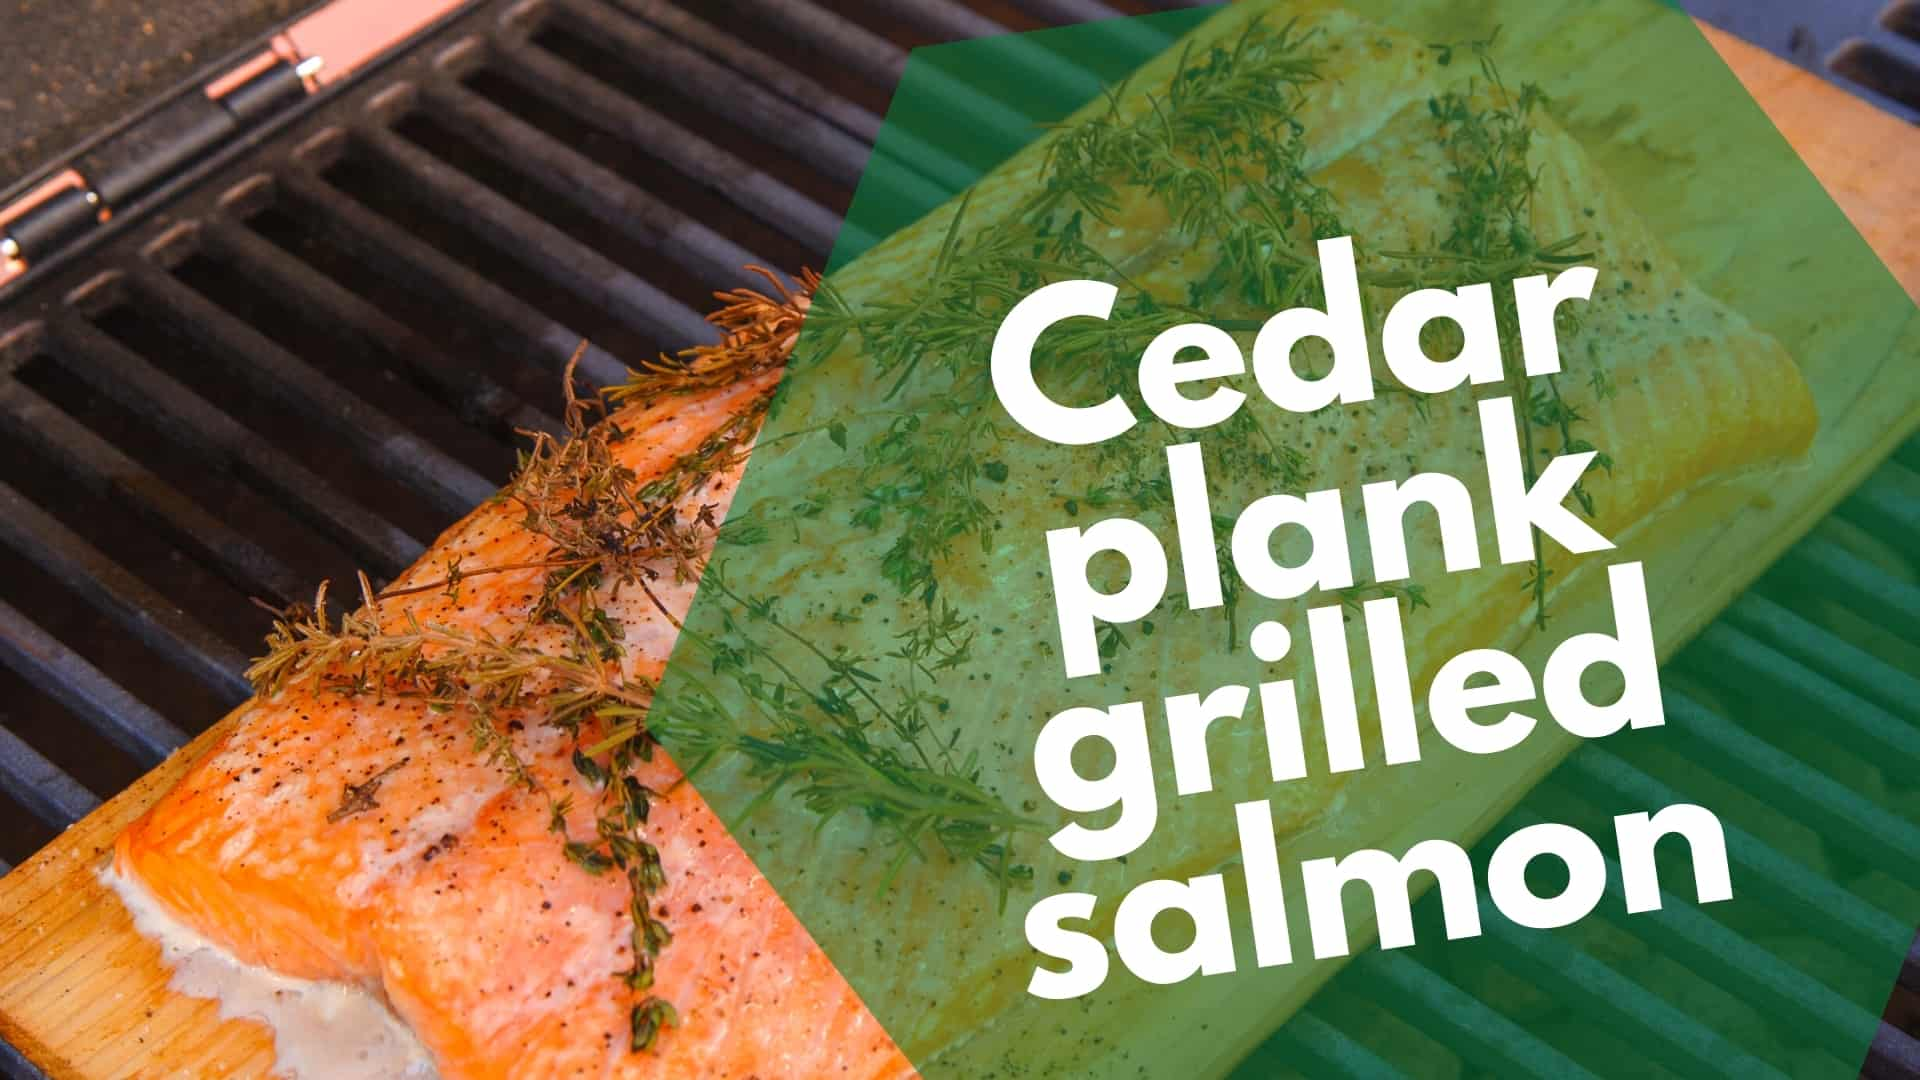 Best Cedar Grilling Planks Recipes: Classic salmon & even cheese!